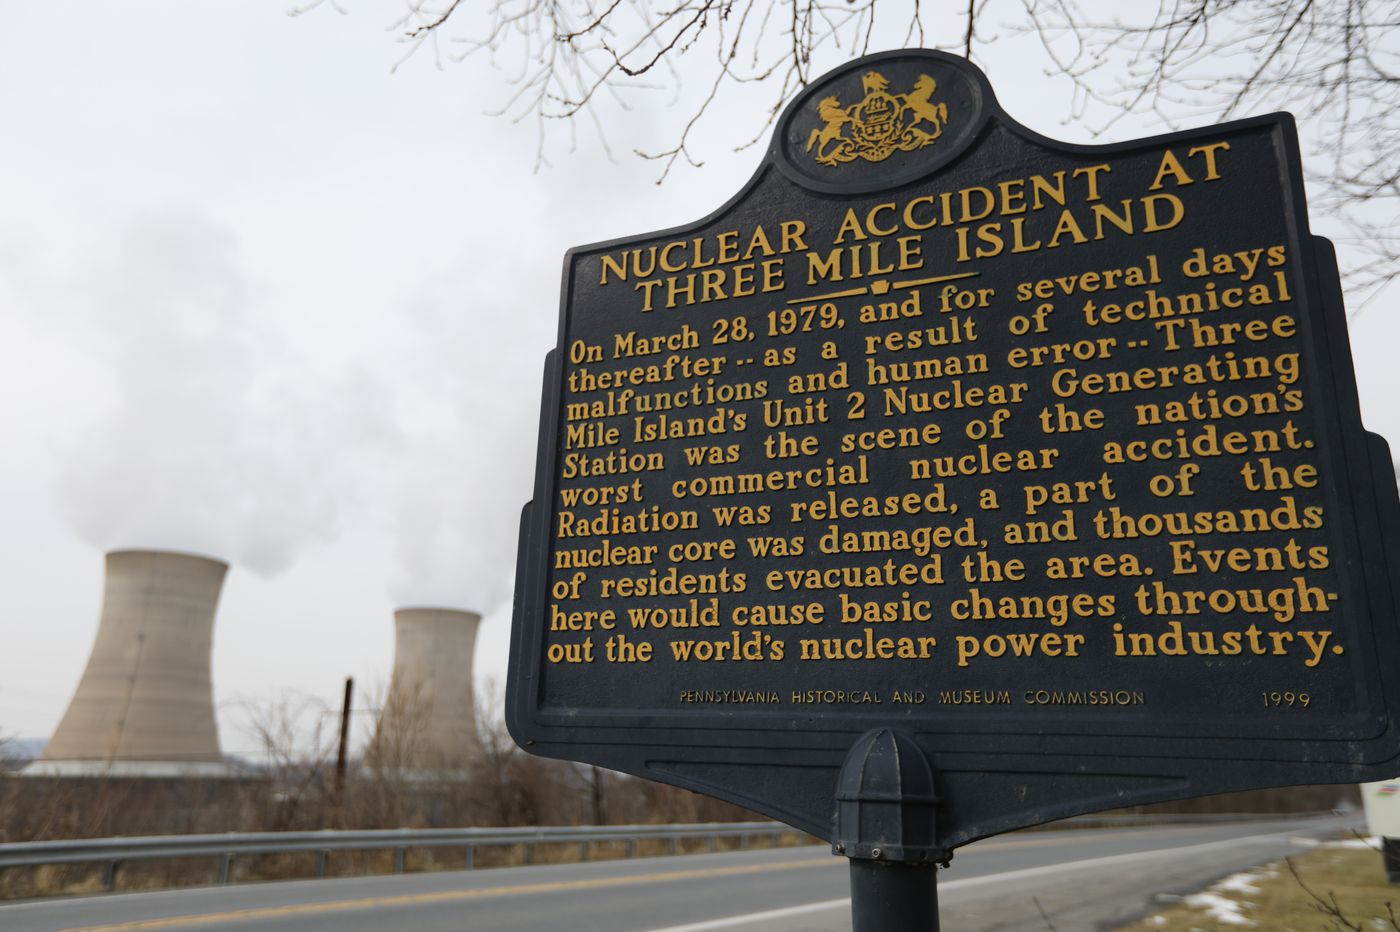 Infamous Three Mile Island reactor, shut down since 1979, will be sold and dismantled